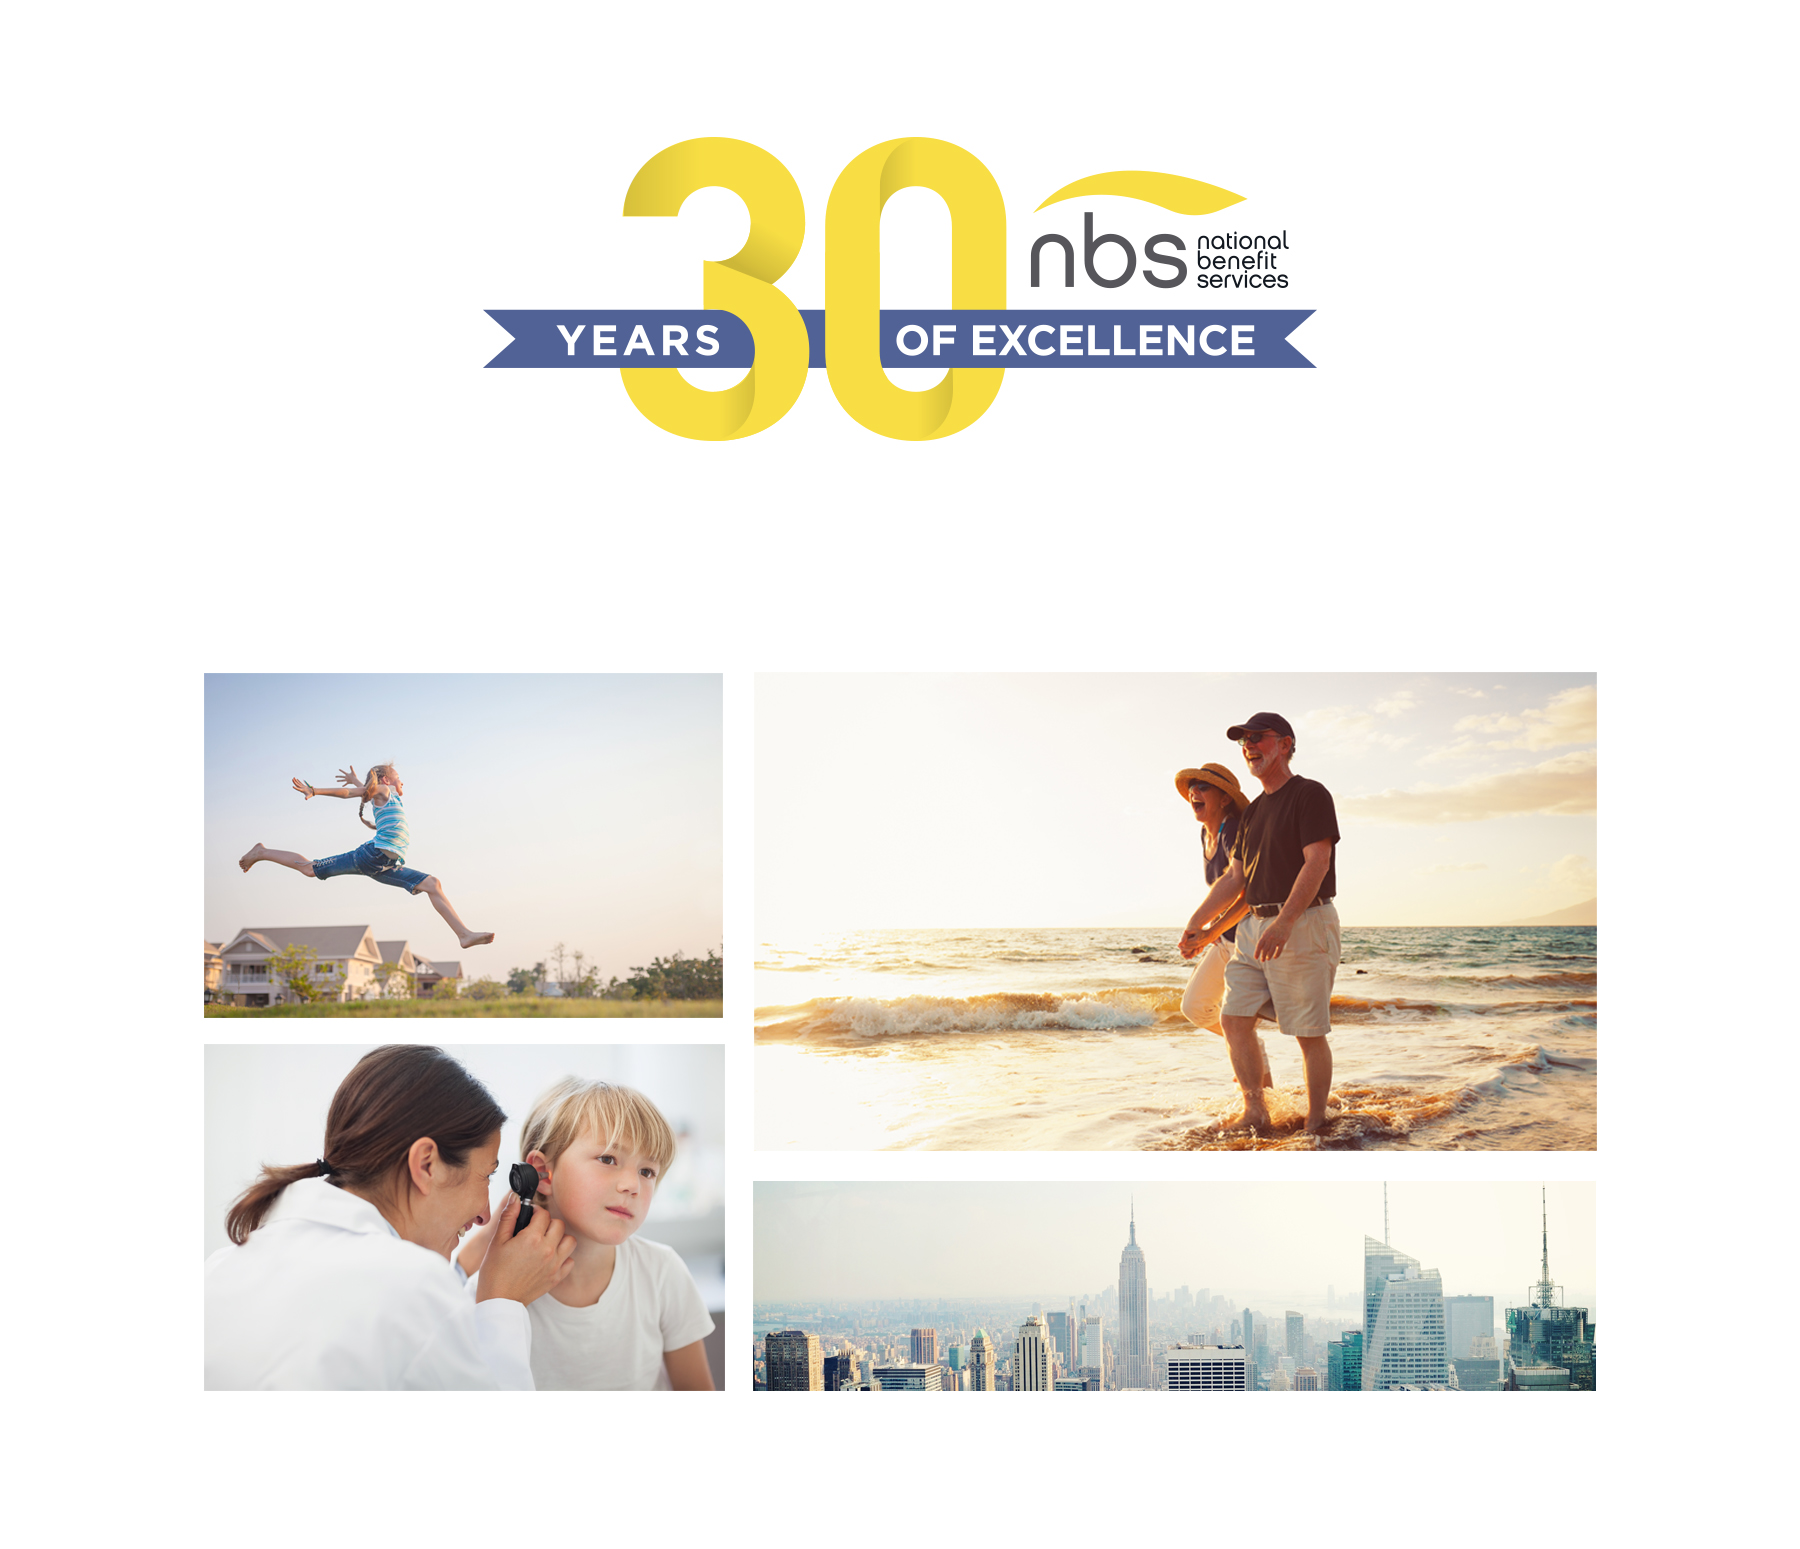 NBS 30th anniversary promotional image